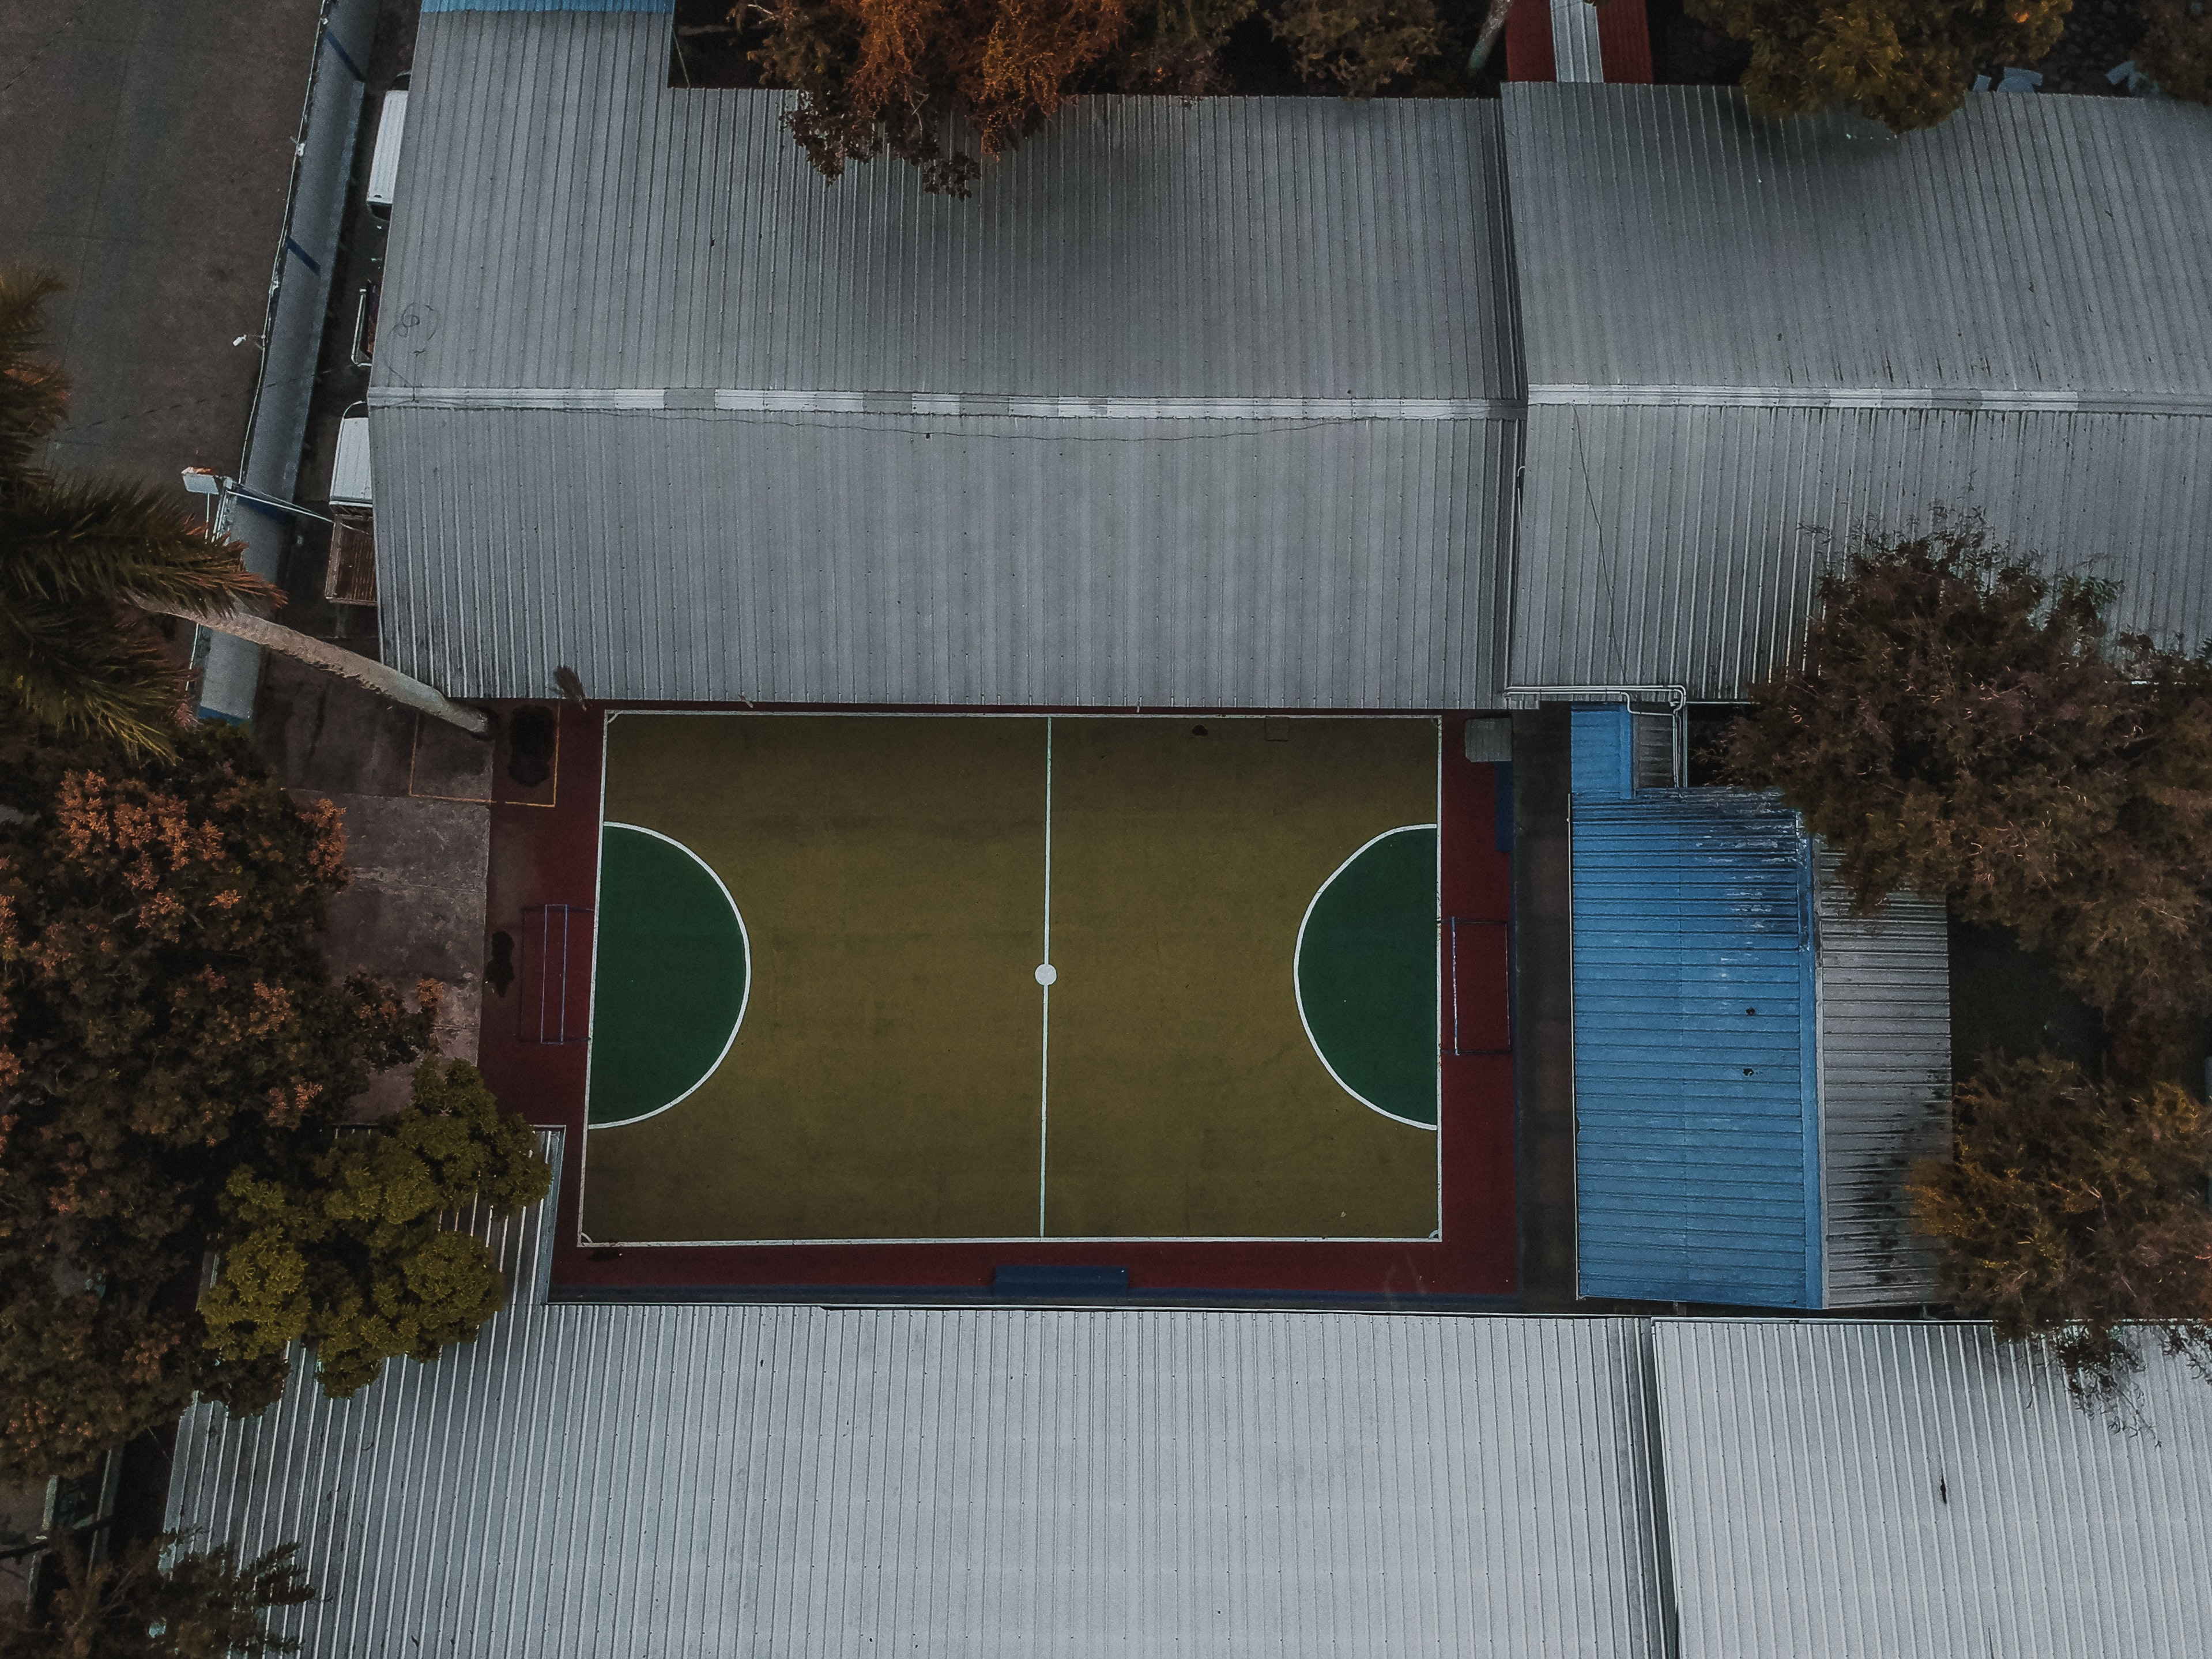 aerial photography of basketball court